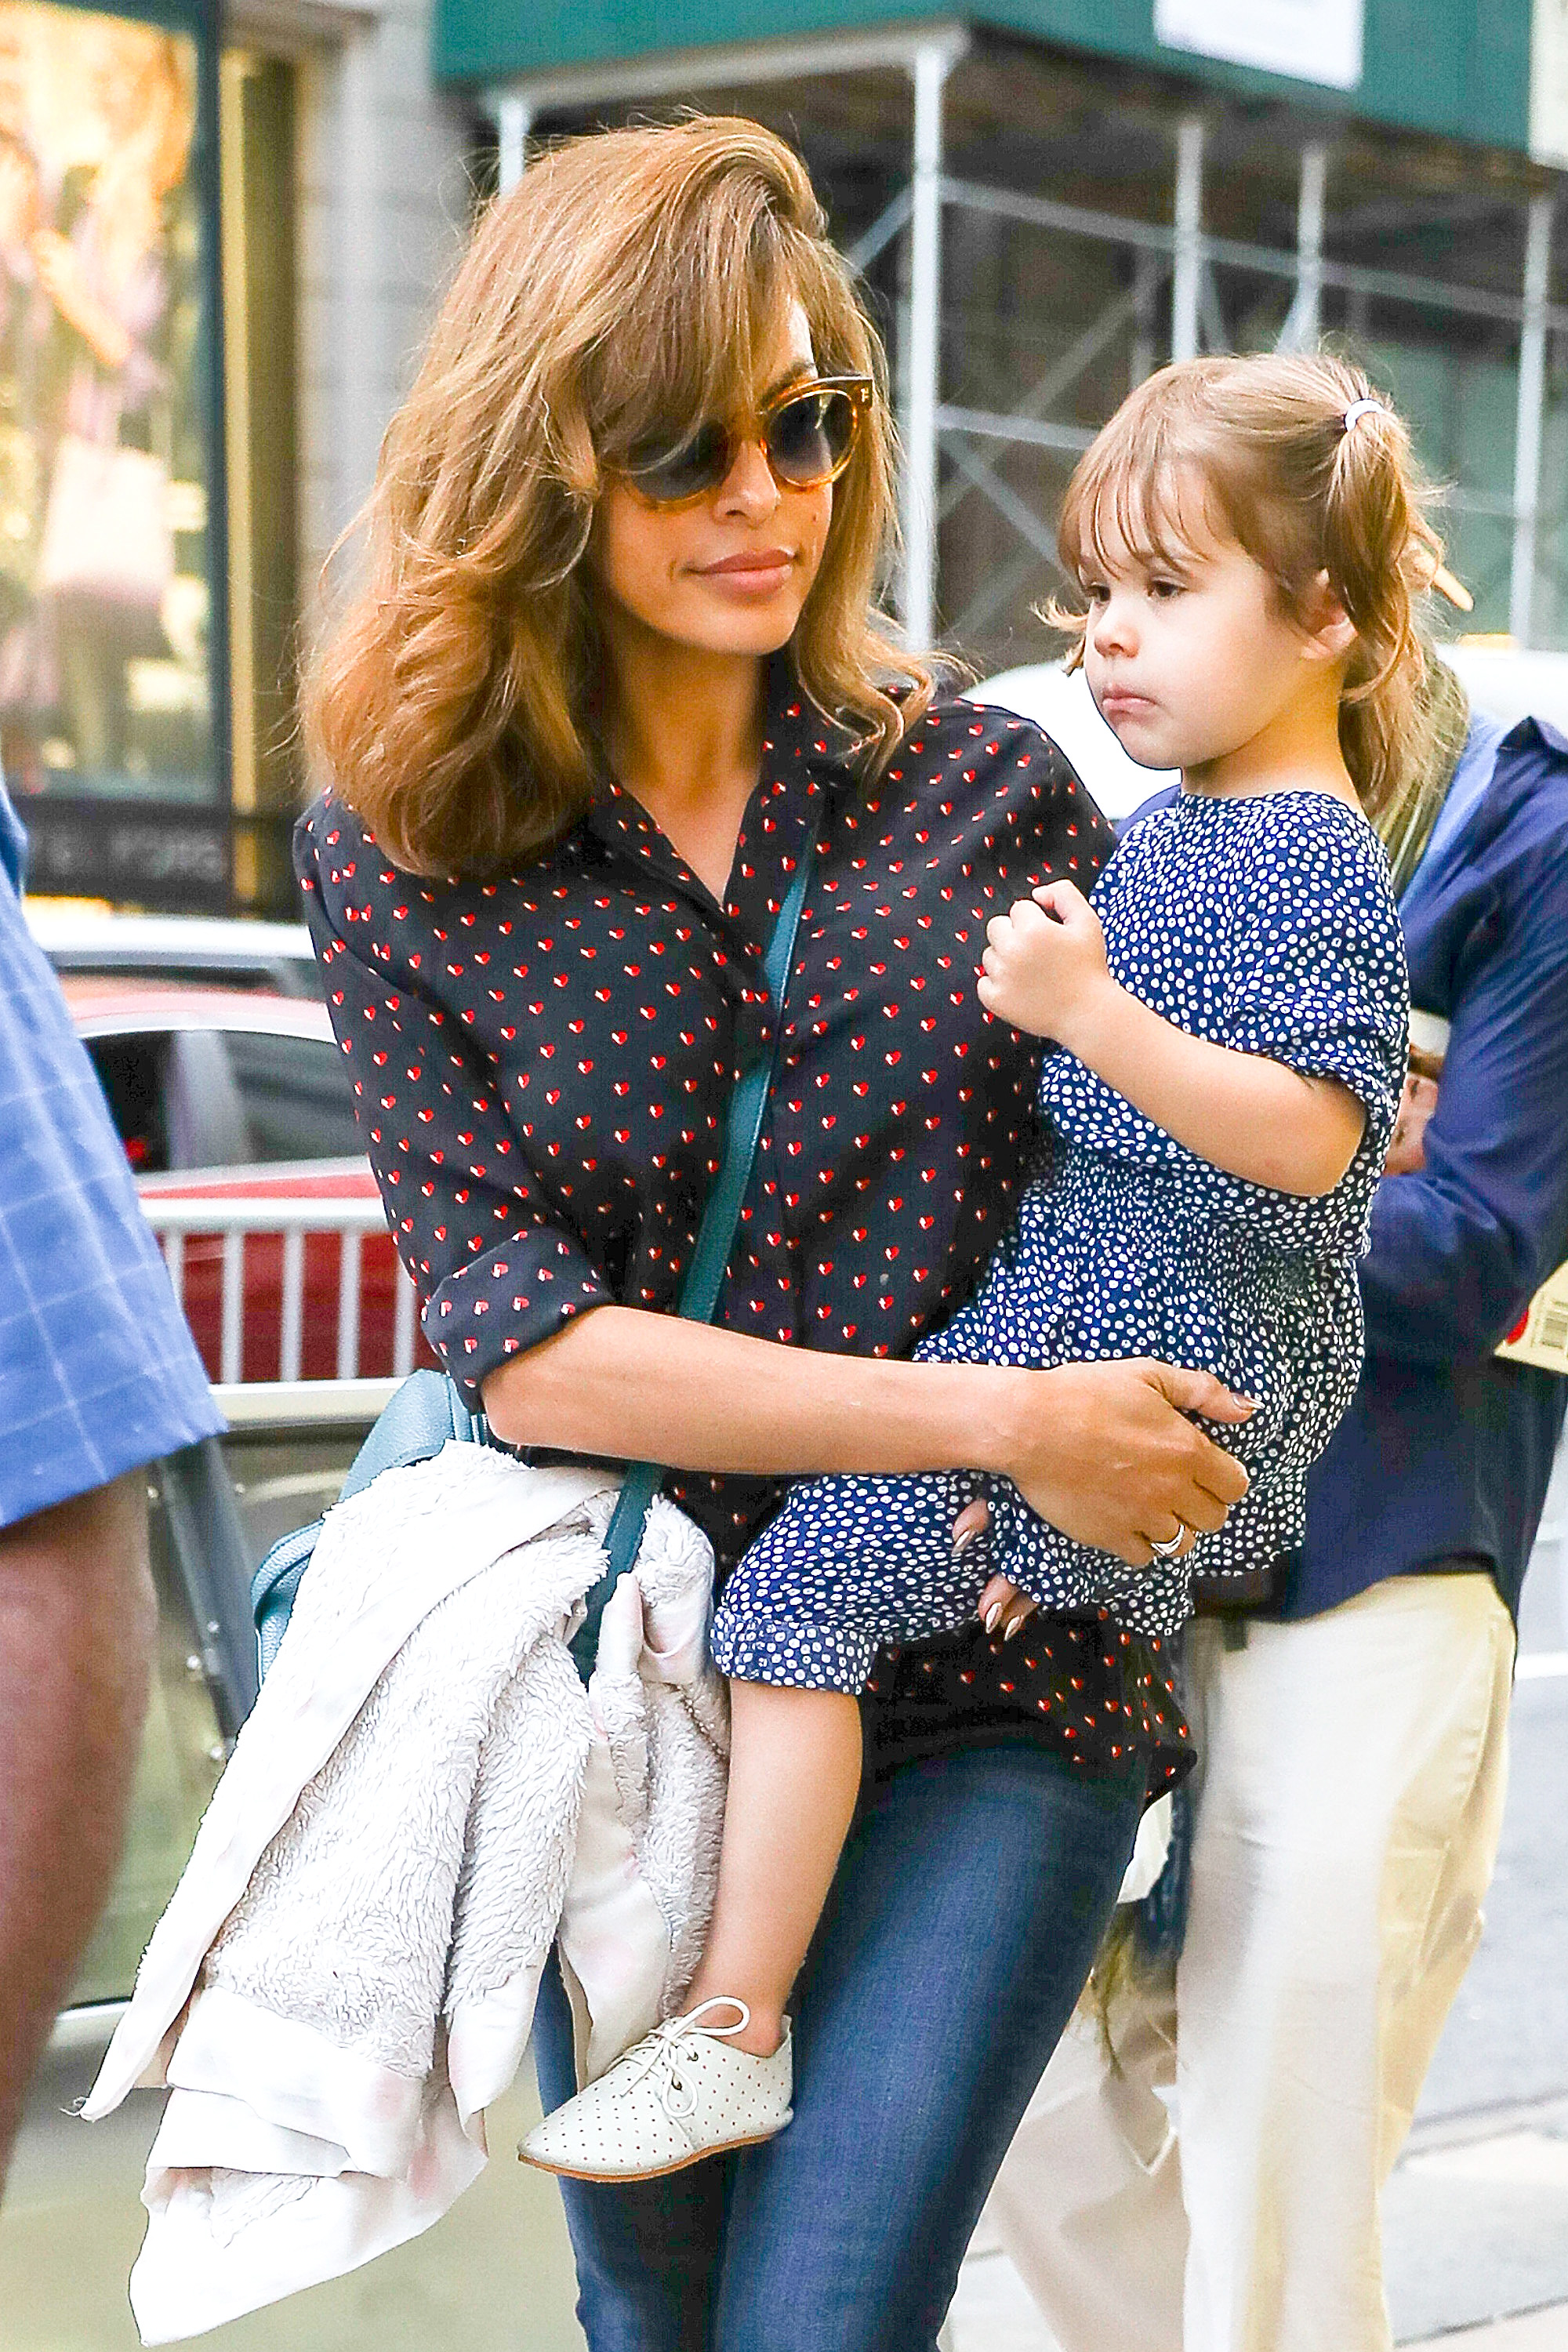 Eva Mendes was spotted carrying her daughter Esmeralda while shopping on Madison avenue in New York City, New York, USA. <P> Pictured: Eva Mendes, Esmeralda Amada Gosling <B>Ref: SPL1589887  260917  </B><BR/> Picture by: Felipe Ramales / Splash News<BR/> </P><P> <B>Splash News and Pictures</B><BR/> Los Angeles:310-821-2666<BR/> New York:212-619-2666<BR/> London:870-934-2666<BR/> <span id=